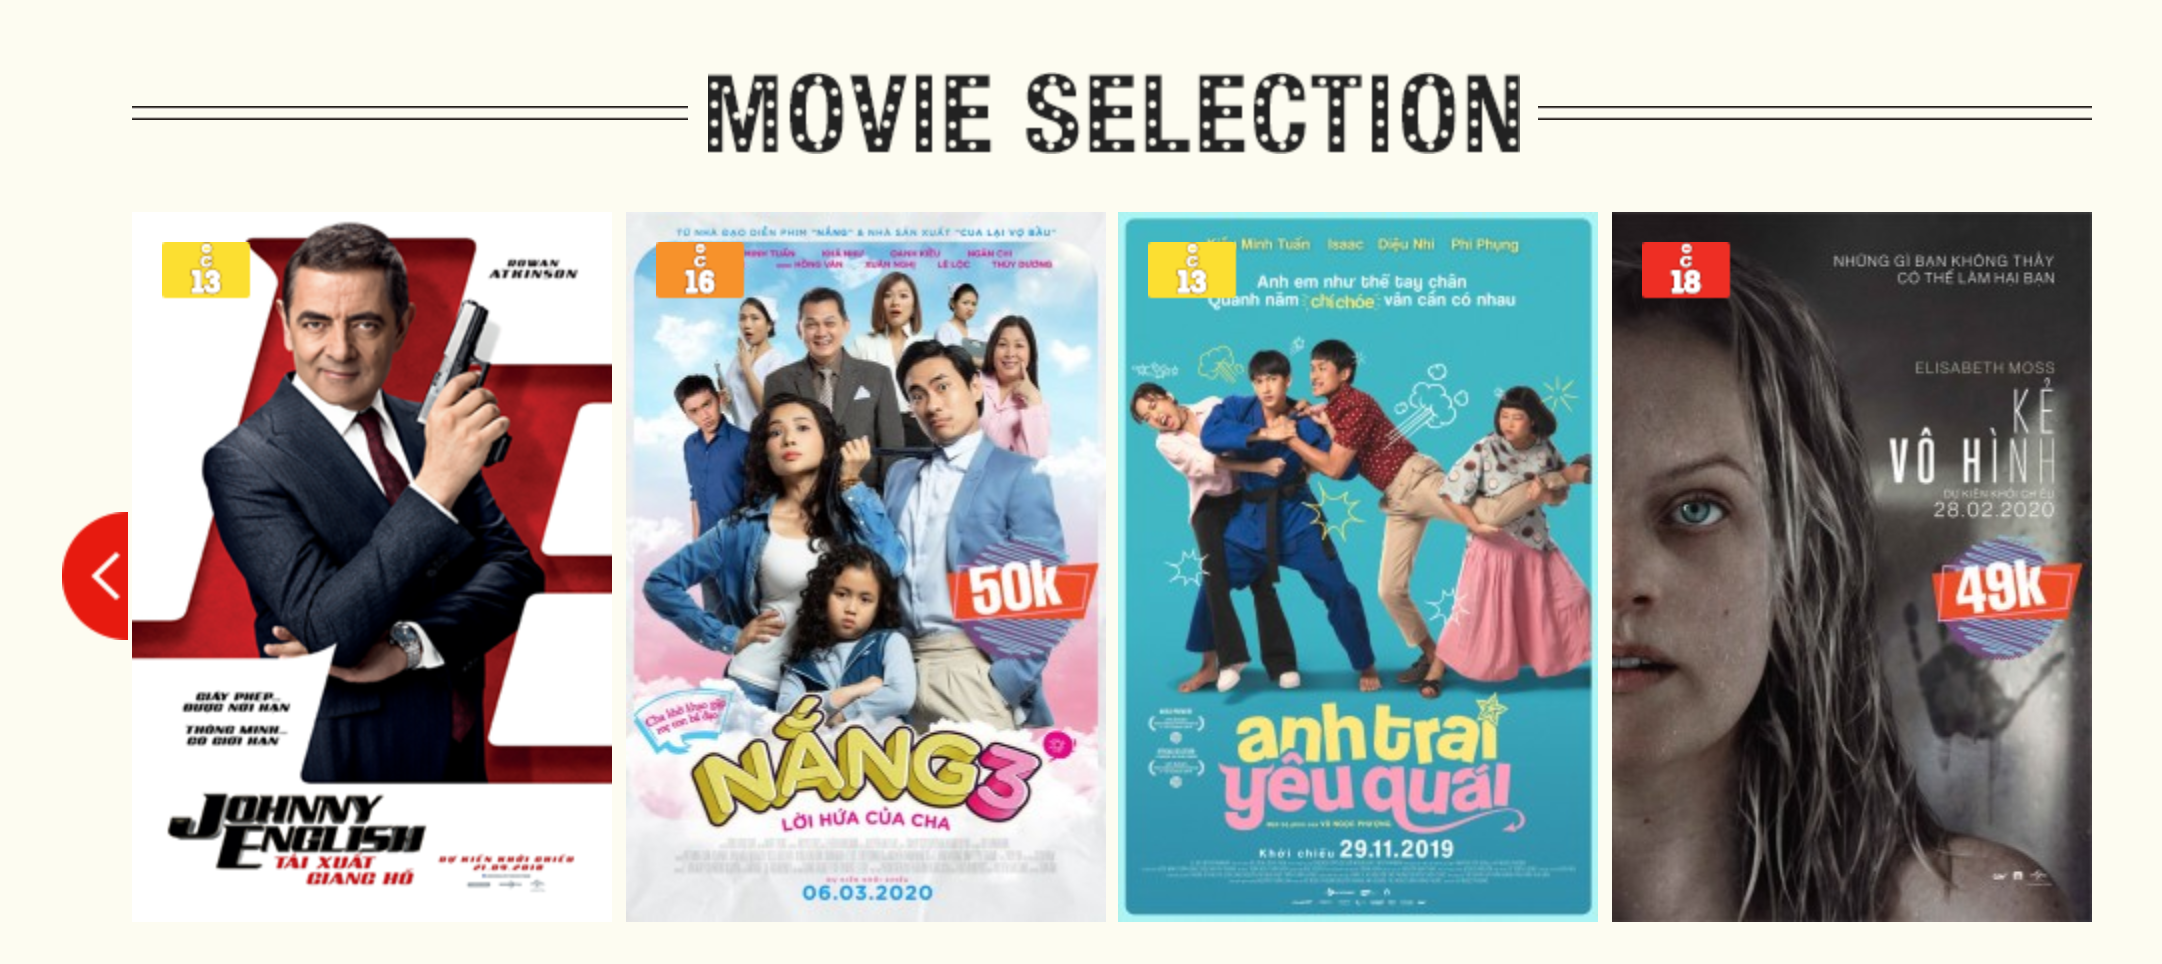 <em>'Johnny English Strikes Again,' a 2018 film, is among the movies selected for rescreening at CGV. This screenshot is taken from the cinema chain's website.</em>